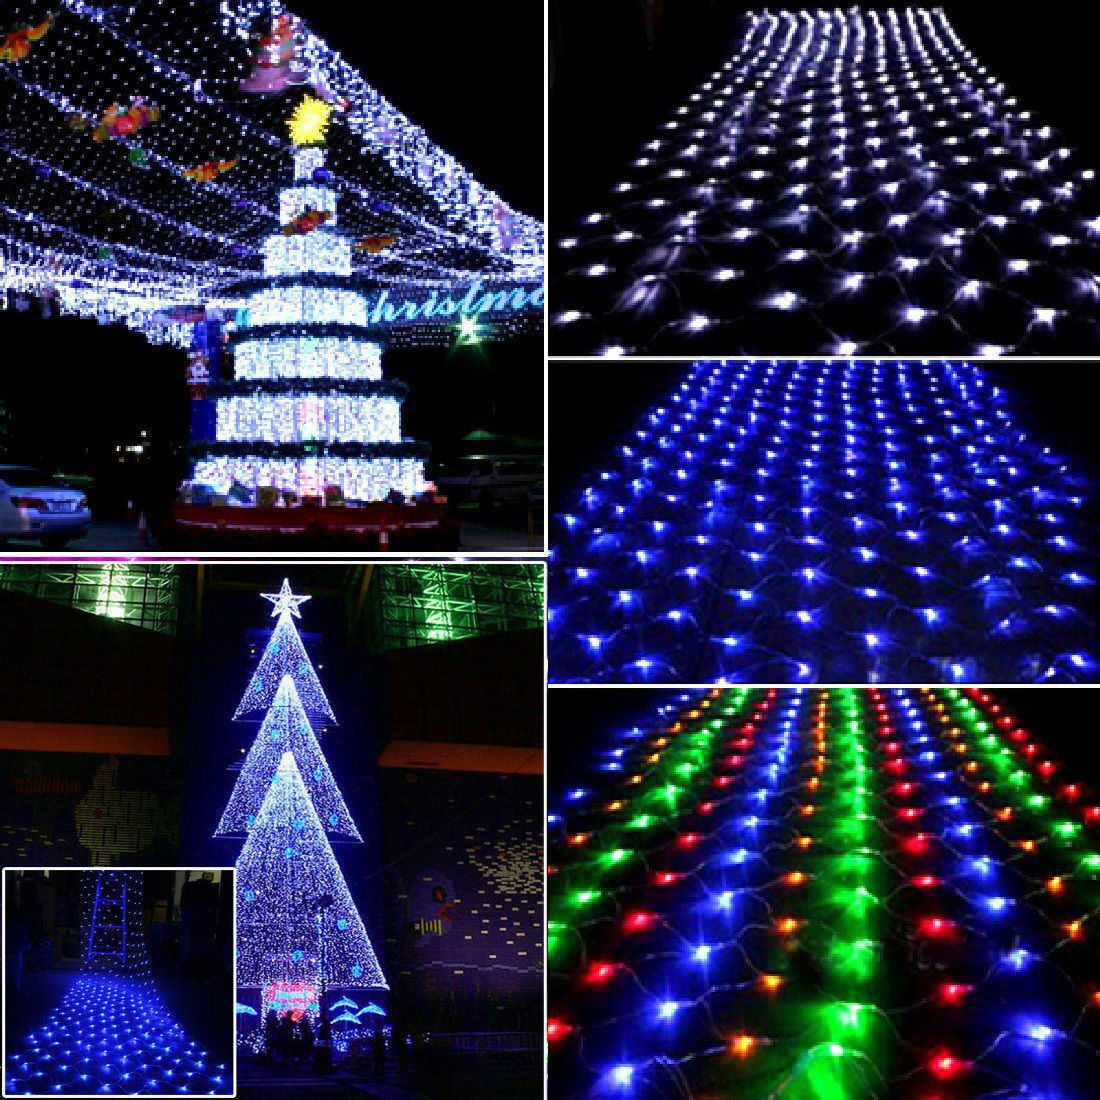 96-200 LED Christmas Net Mesh Fairy String Lights Party